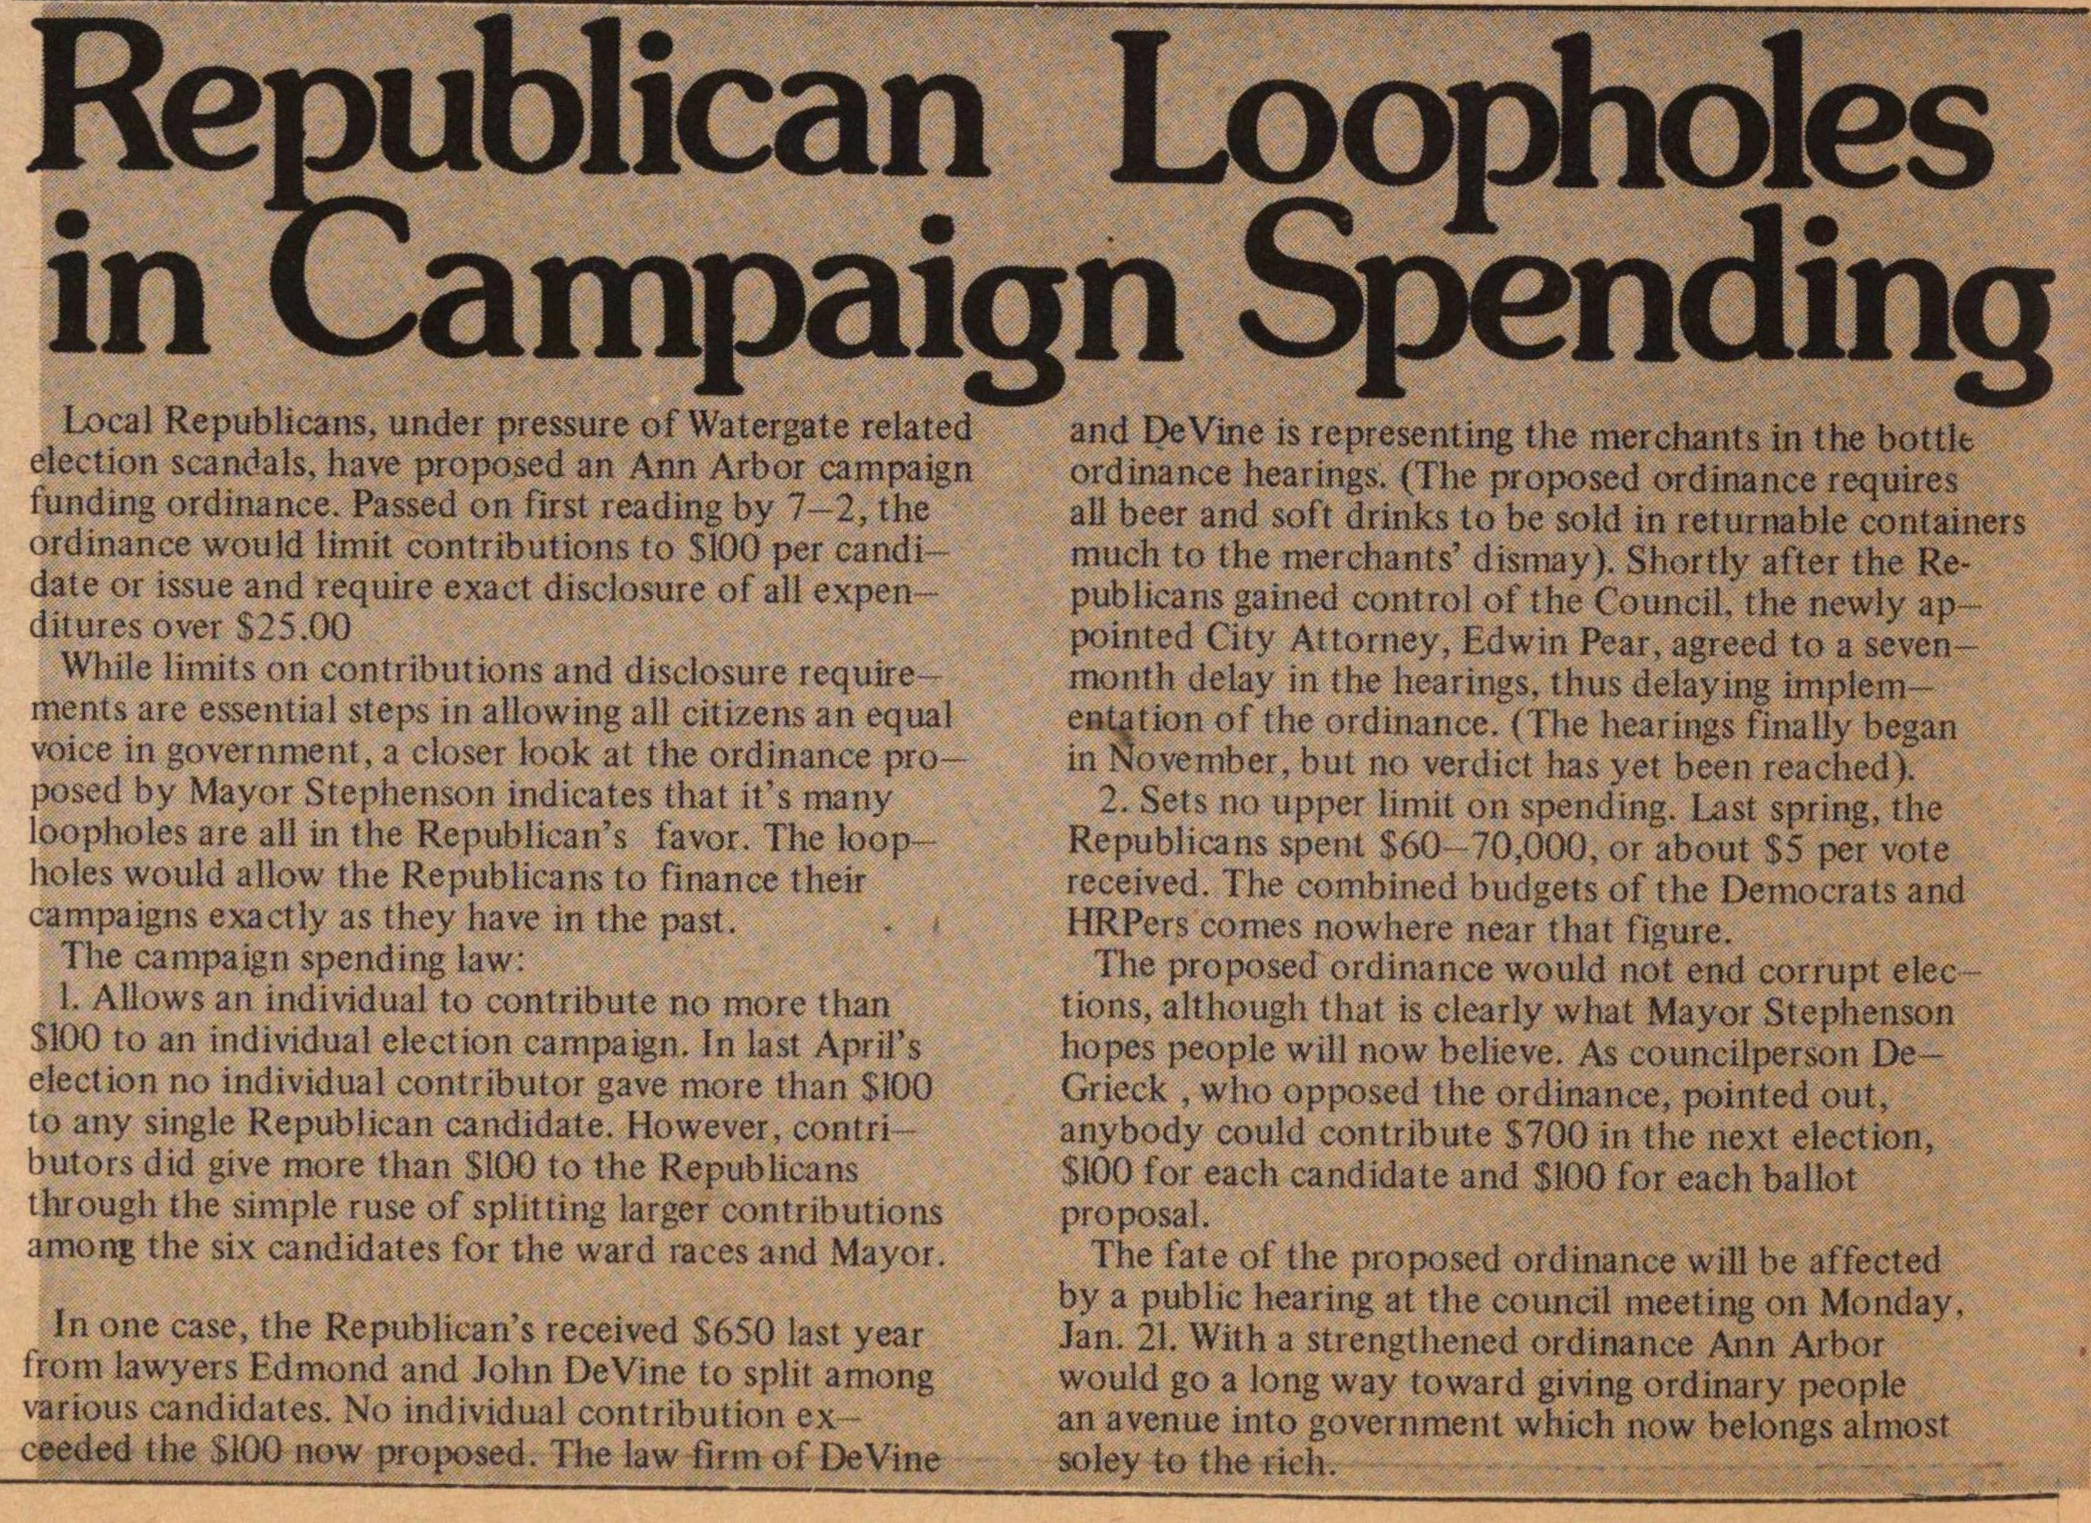 Republican Loopholes In Campaign Spending image